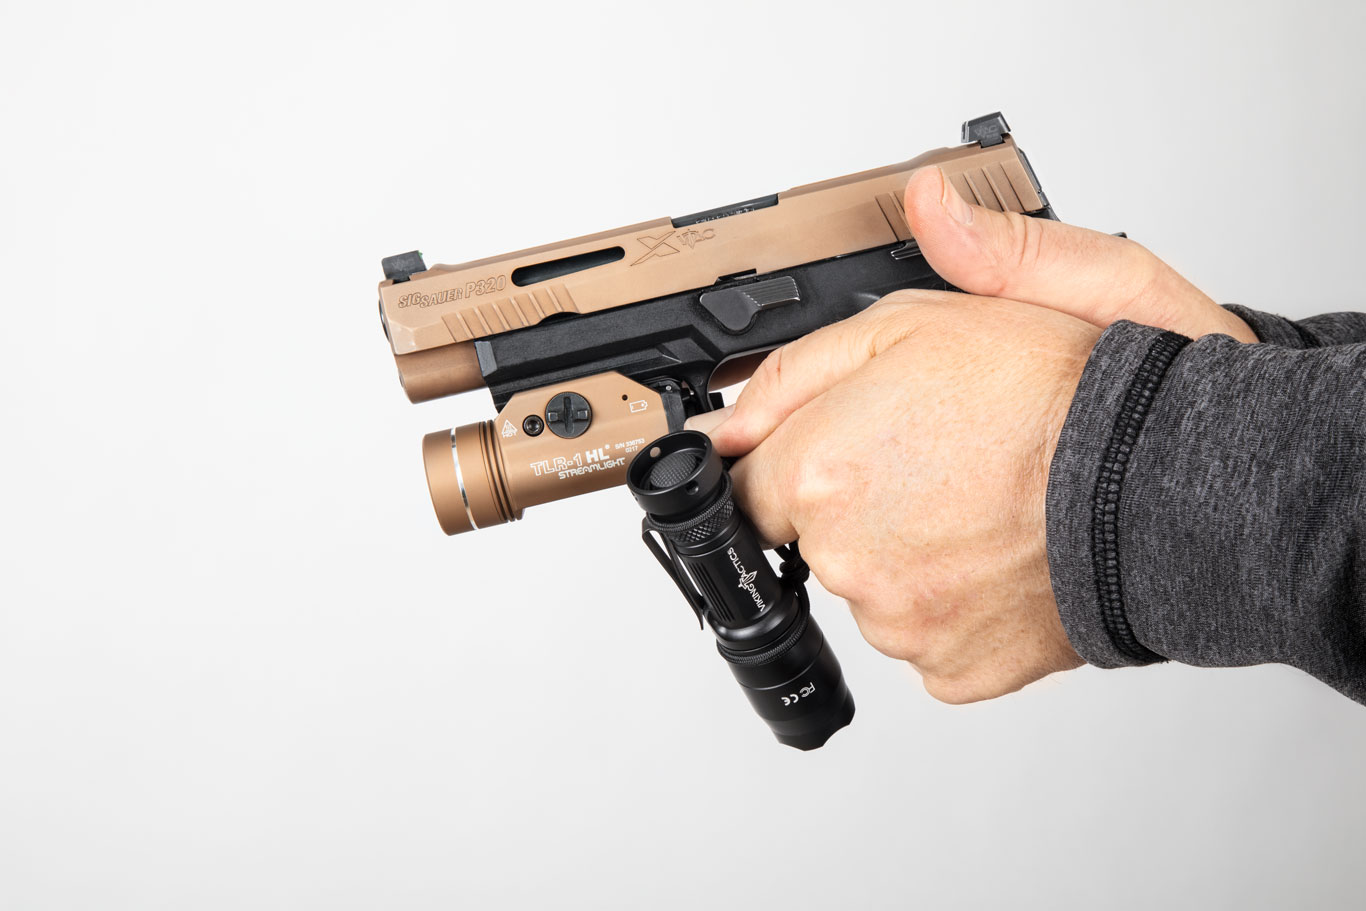 With the bungee, the light can stay at the ready even during operation of the pistol- mounted light.